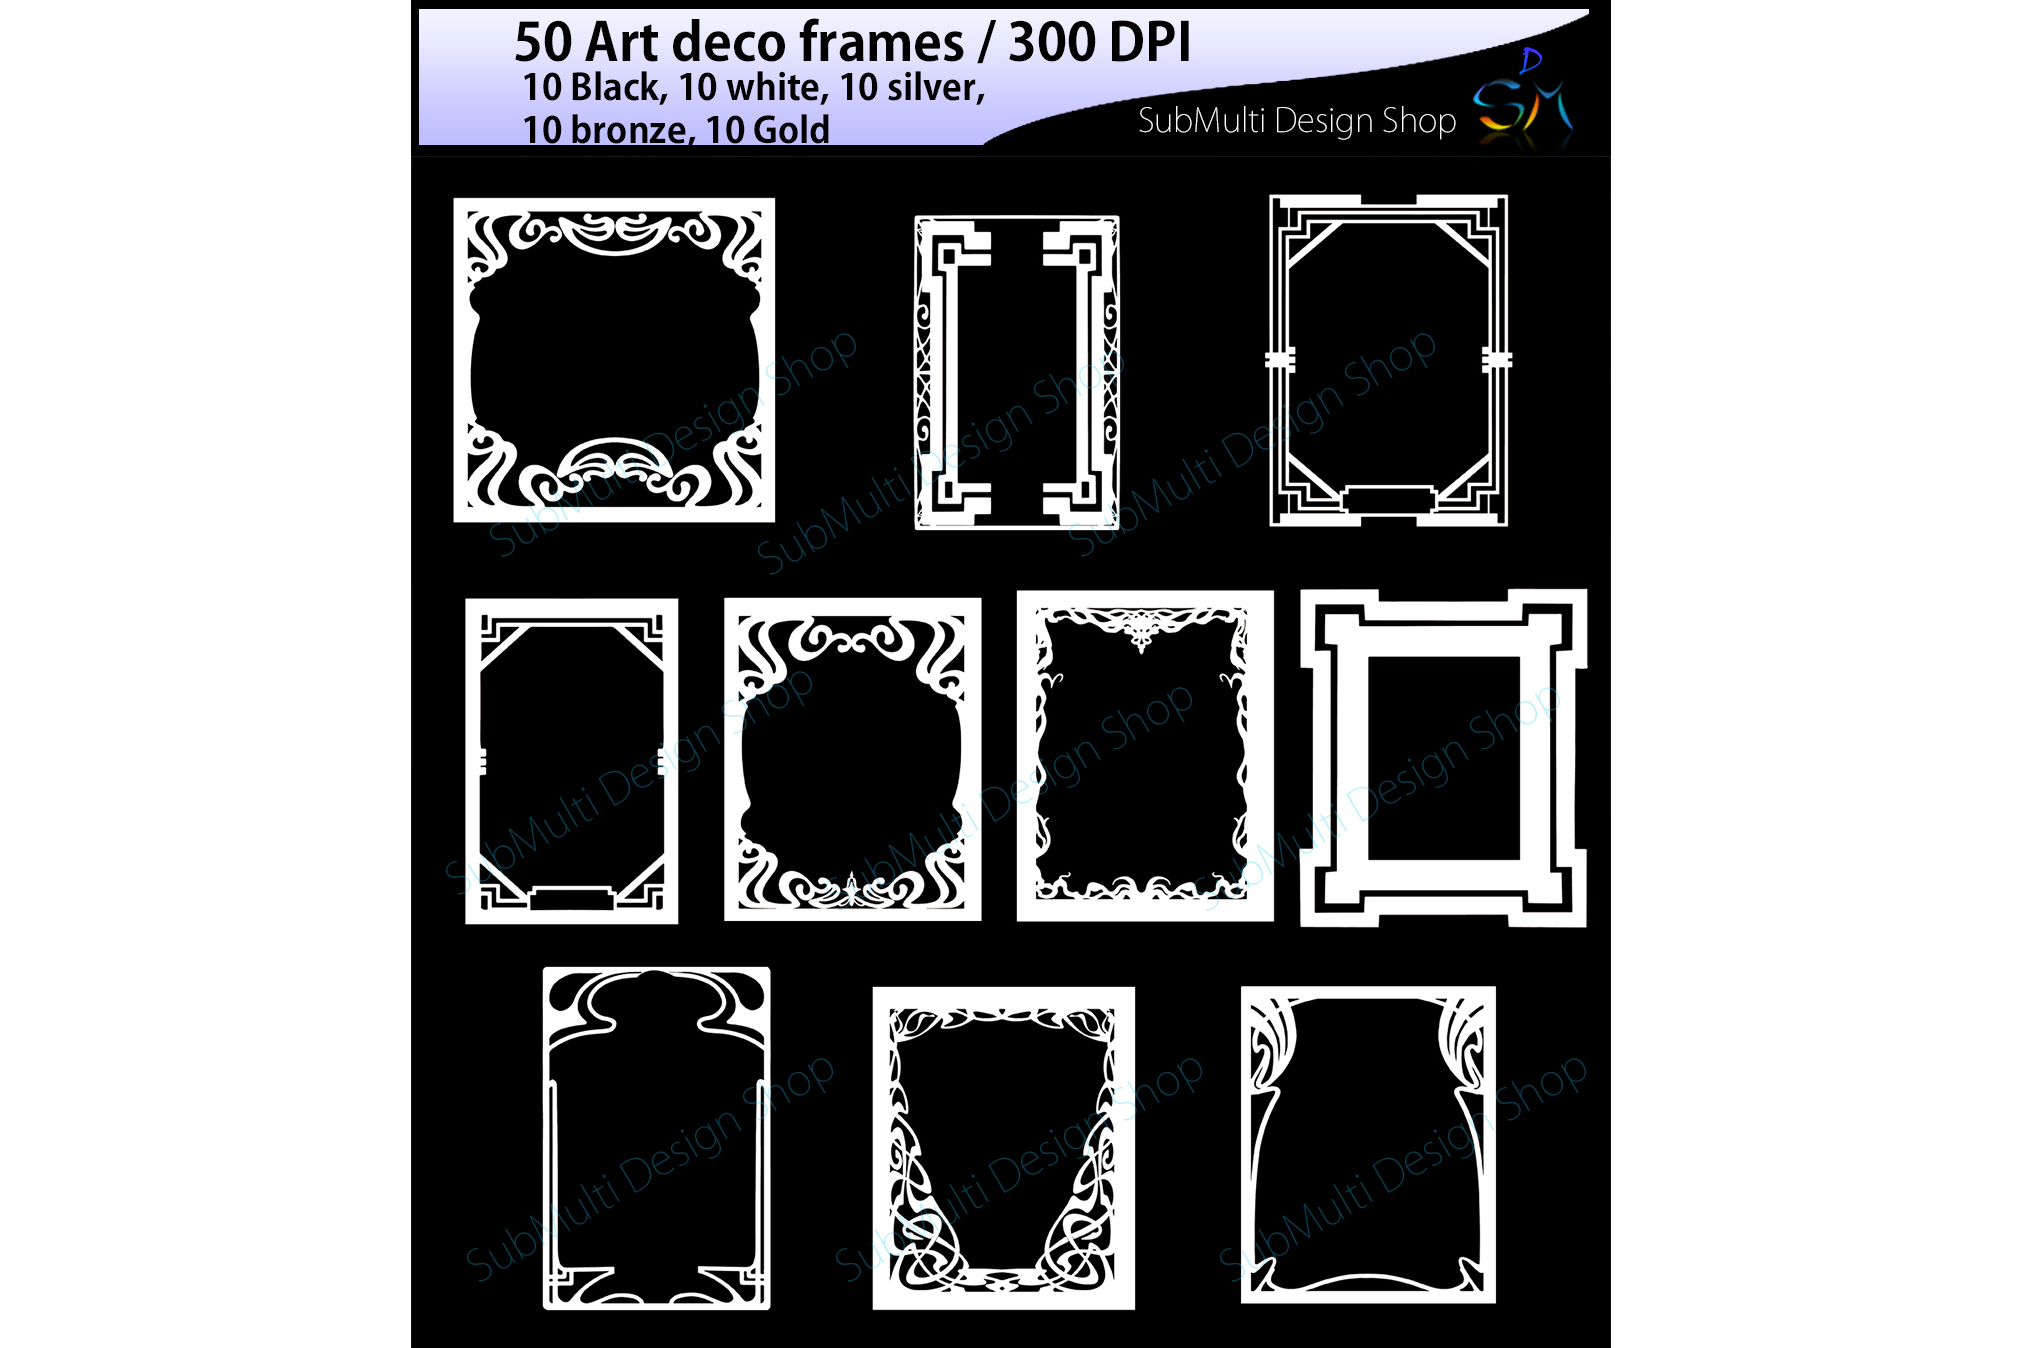 art deco frames / art deco frames clipart / art deco frames silhouette / art deco gold frames / art deco silver frame / High Quality example image 5